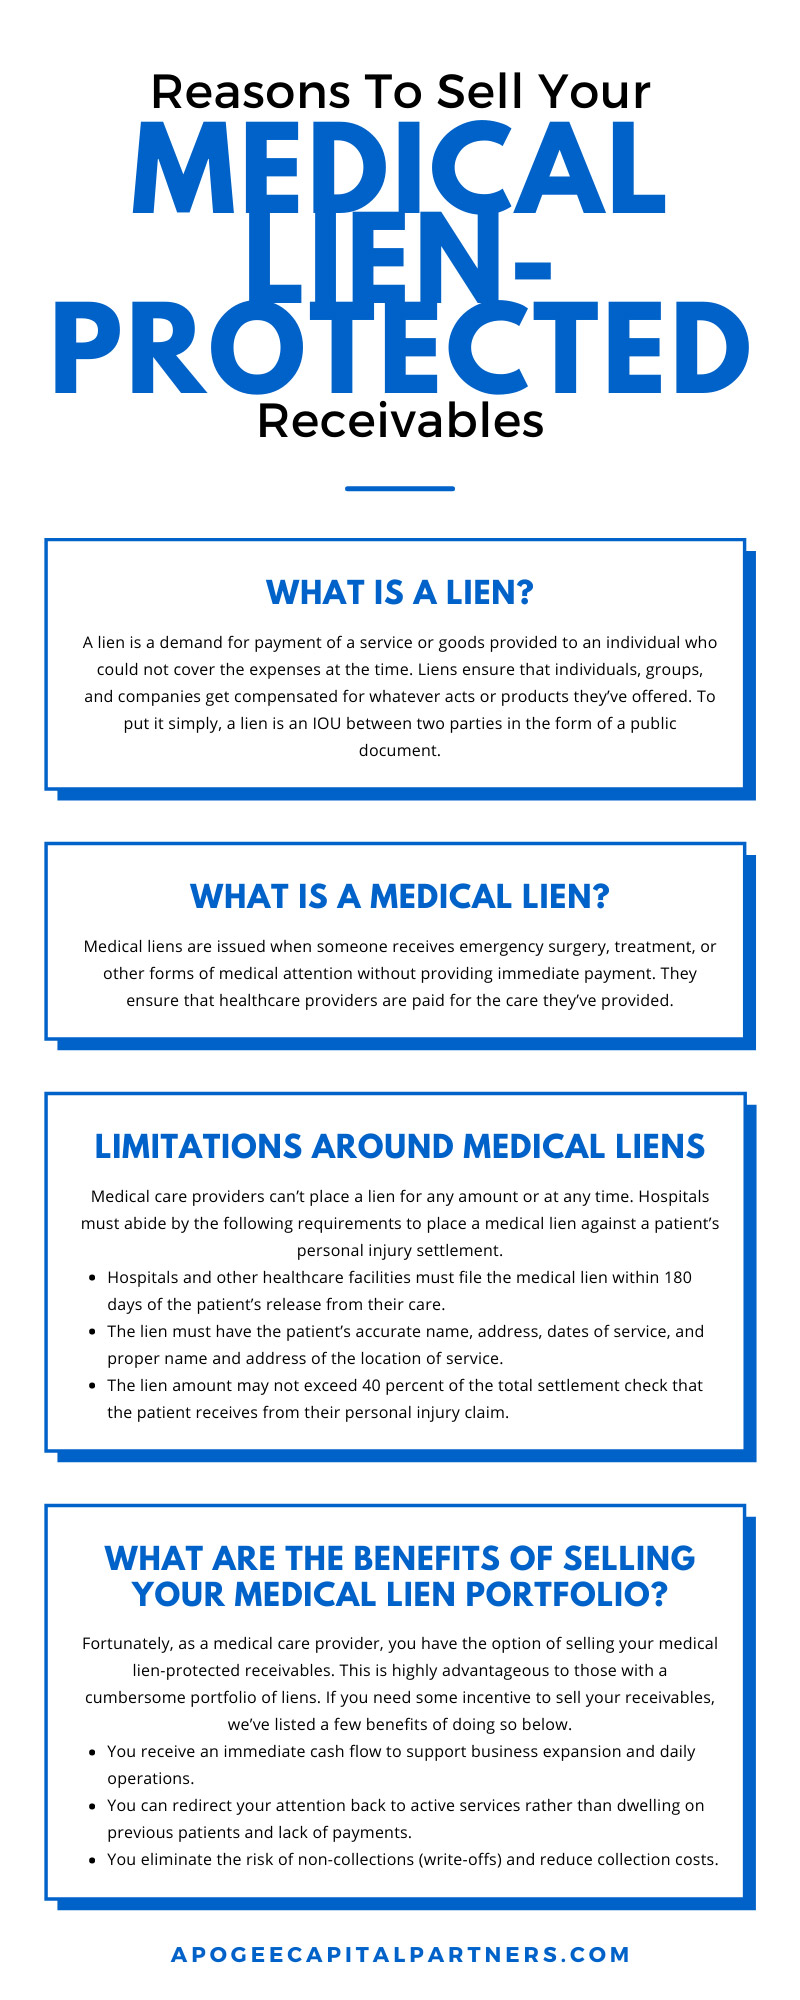 Reasons To Sell Your Medical Lien-Protected Receivables